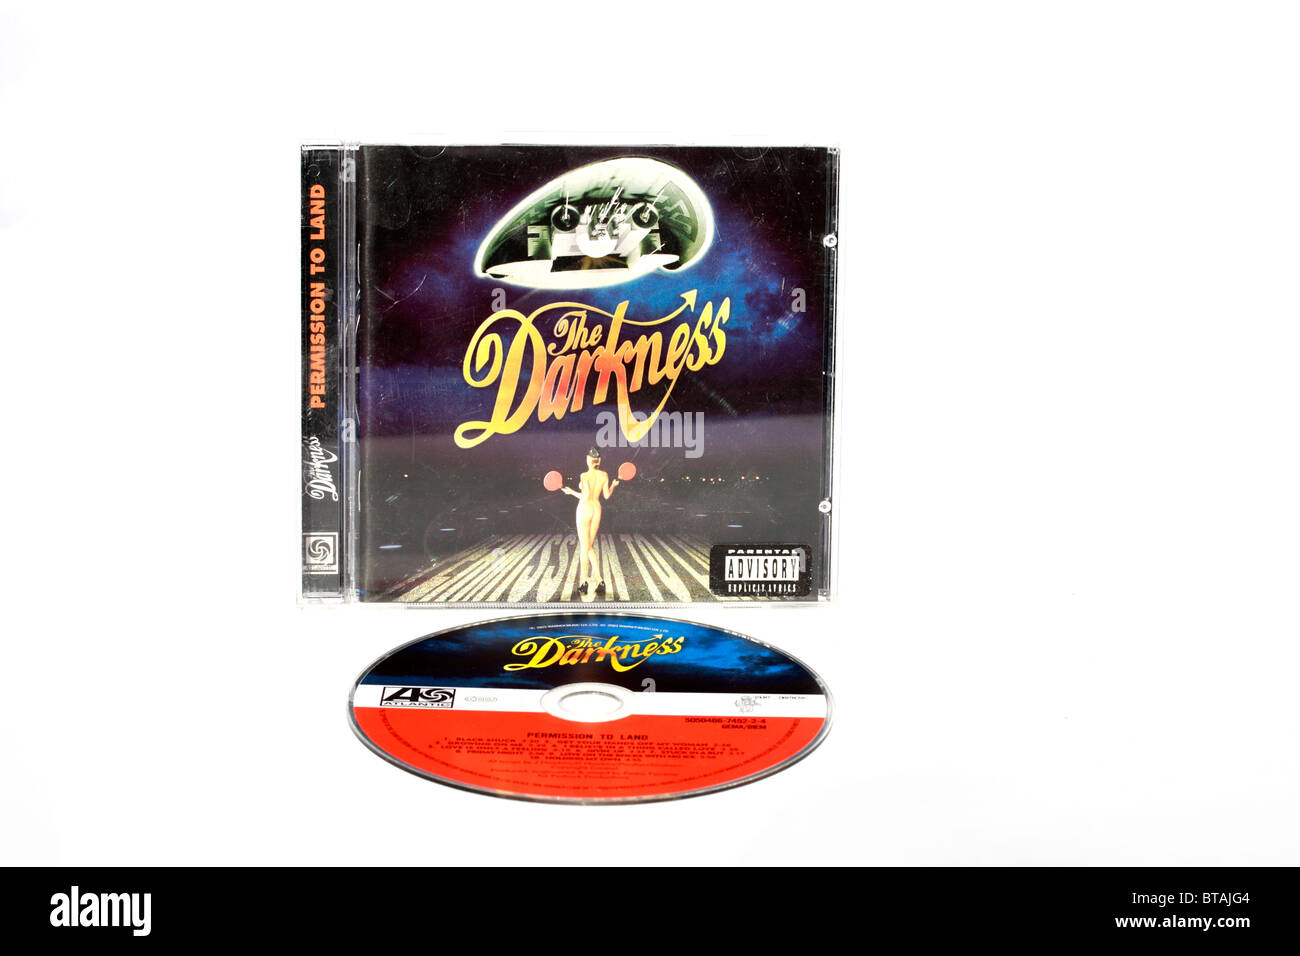 the Darkness - permission to Land Music CD - Stock Image